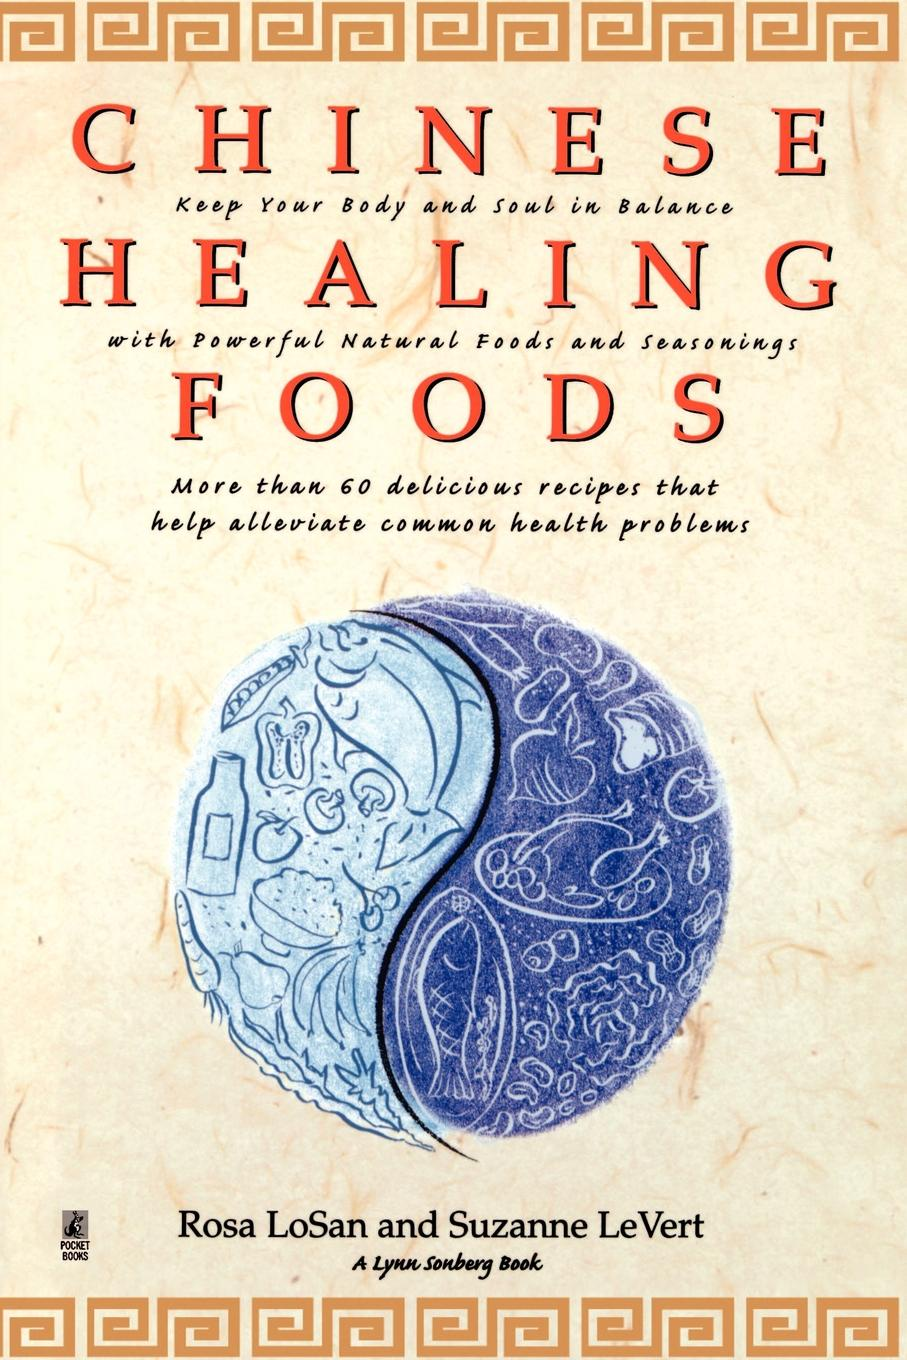 Rosa LoSan, Susan LeVert, Lynn Sonberg Chinese Healing Foods. Keep Your Body and Soul in Balance with Powerful Natural Foods Seasonings